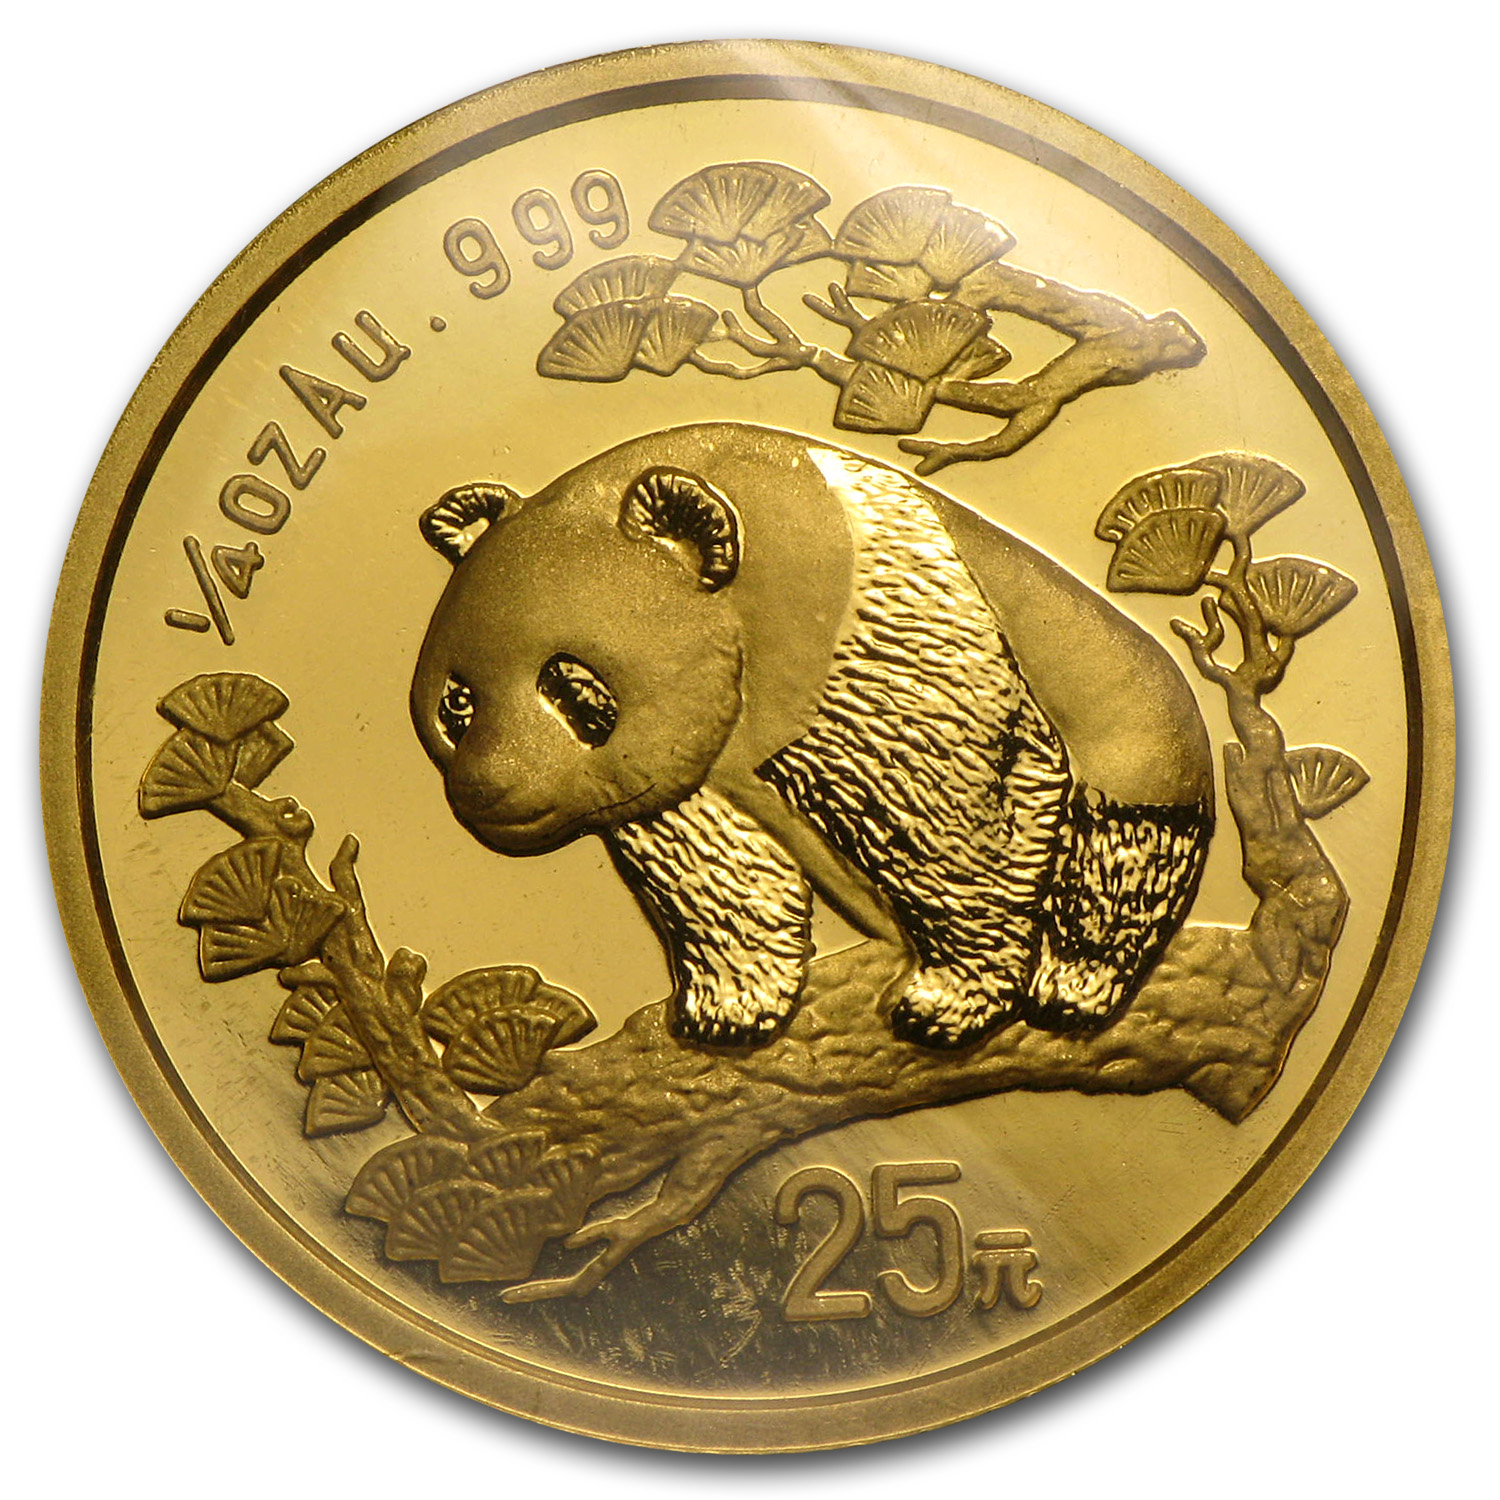 1997 1/4 oz Gold Chinese Panda Large Date BU (Sealed)